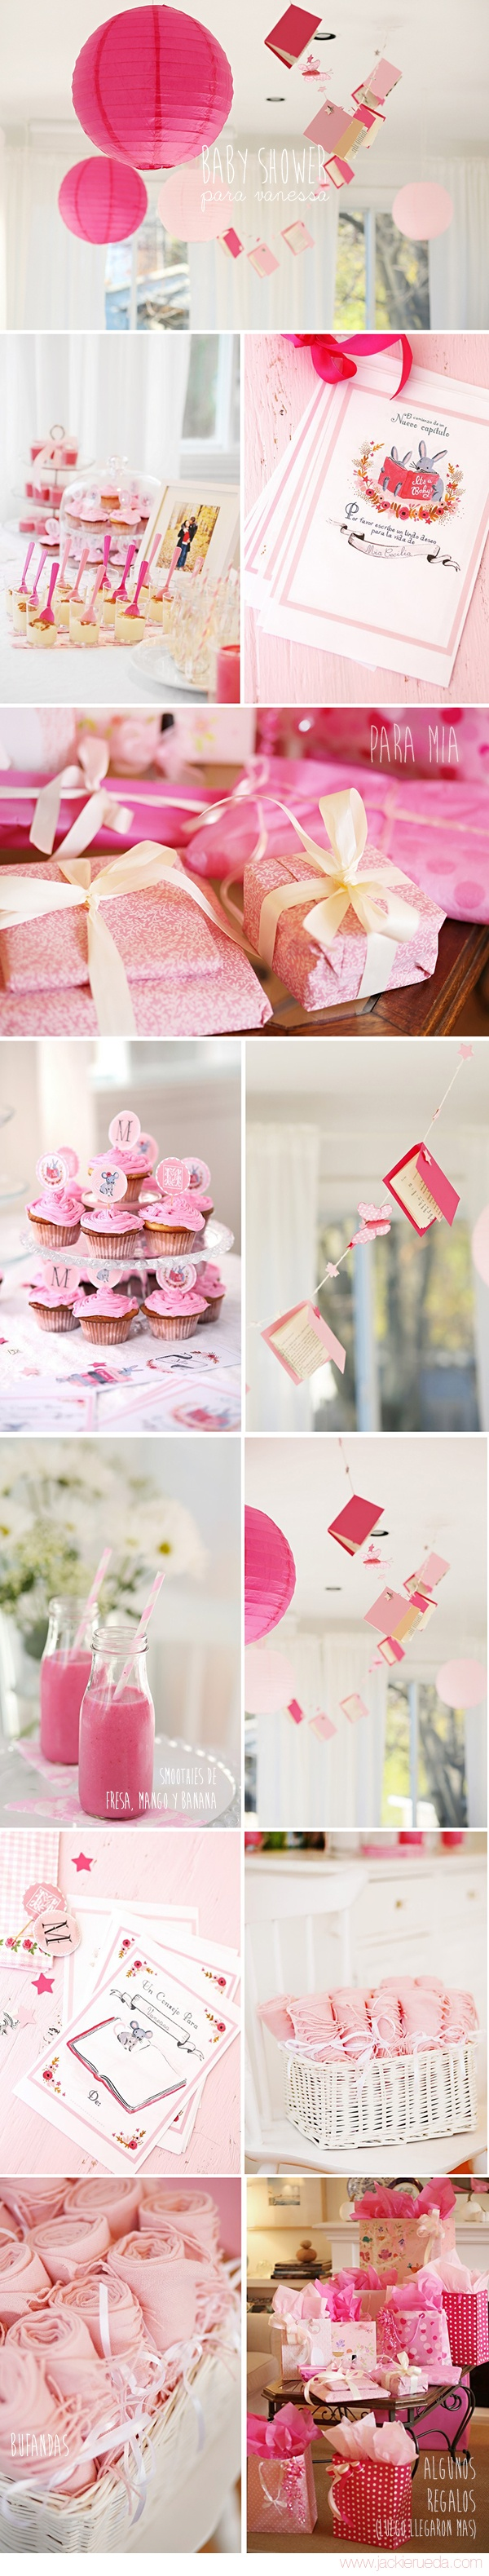 This is actually a baby shower but I'm liking the ideas for bday party as well.